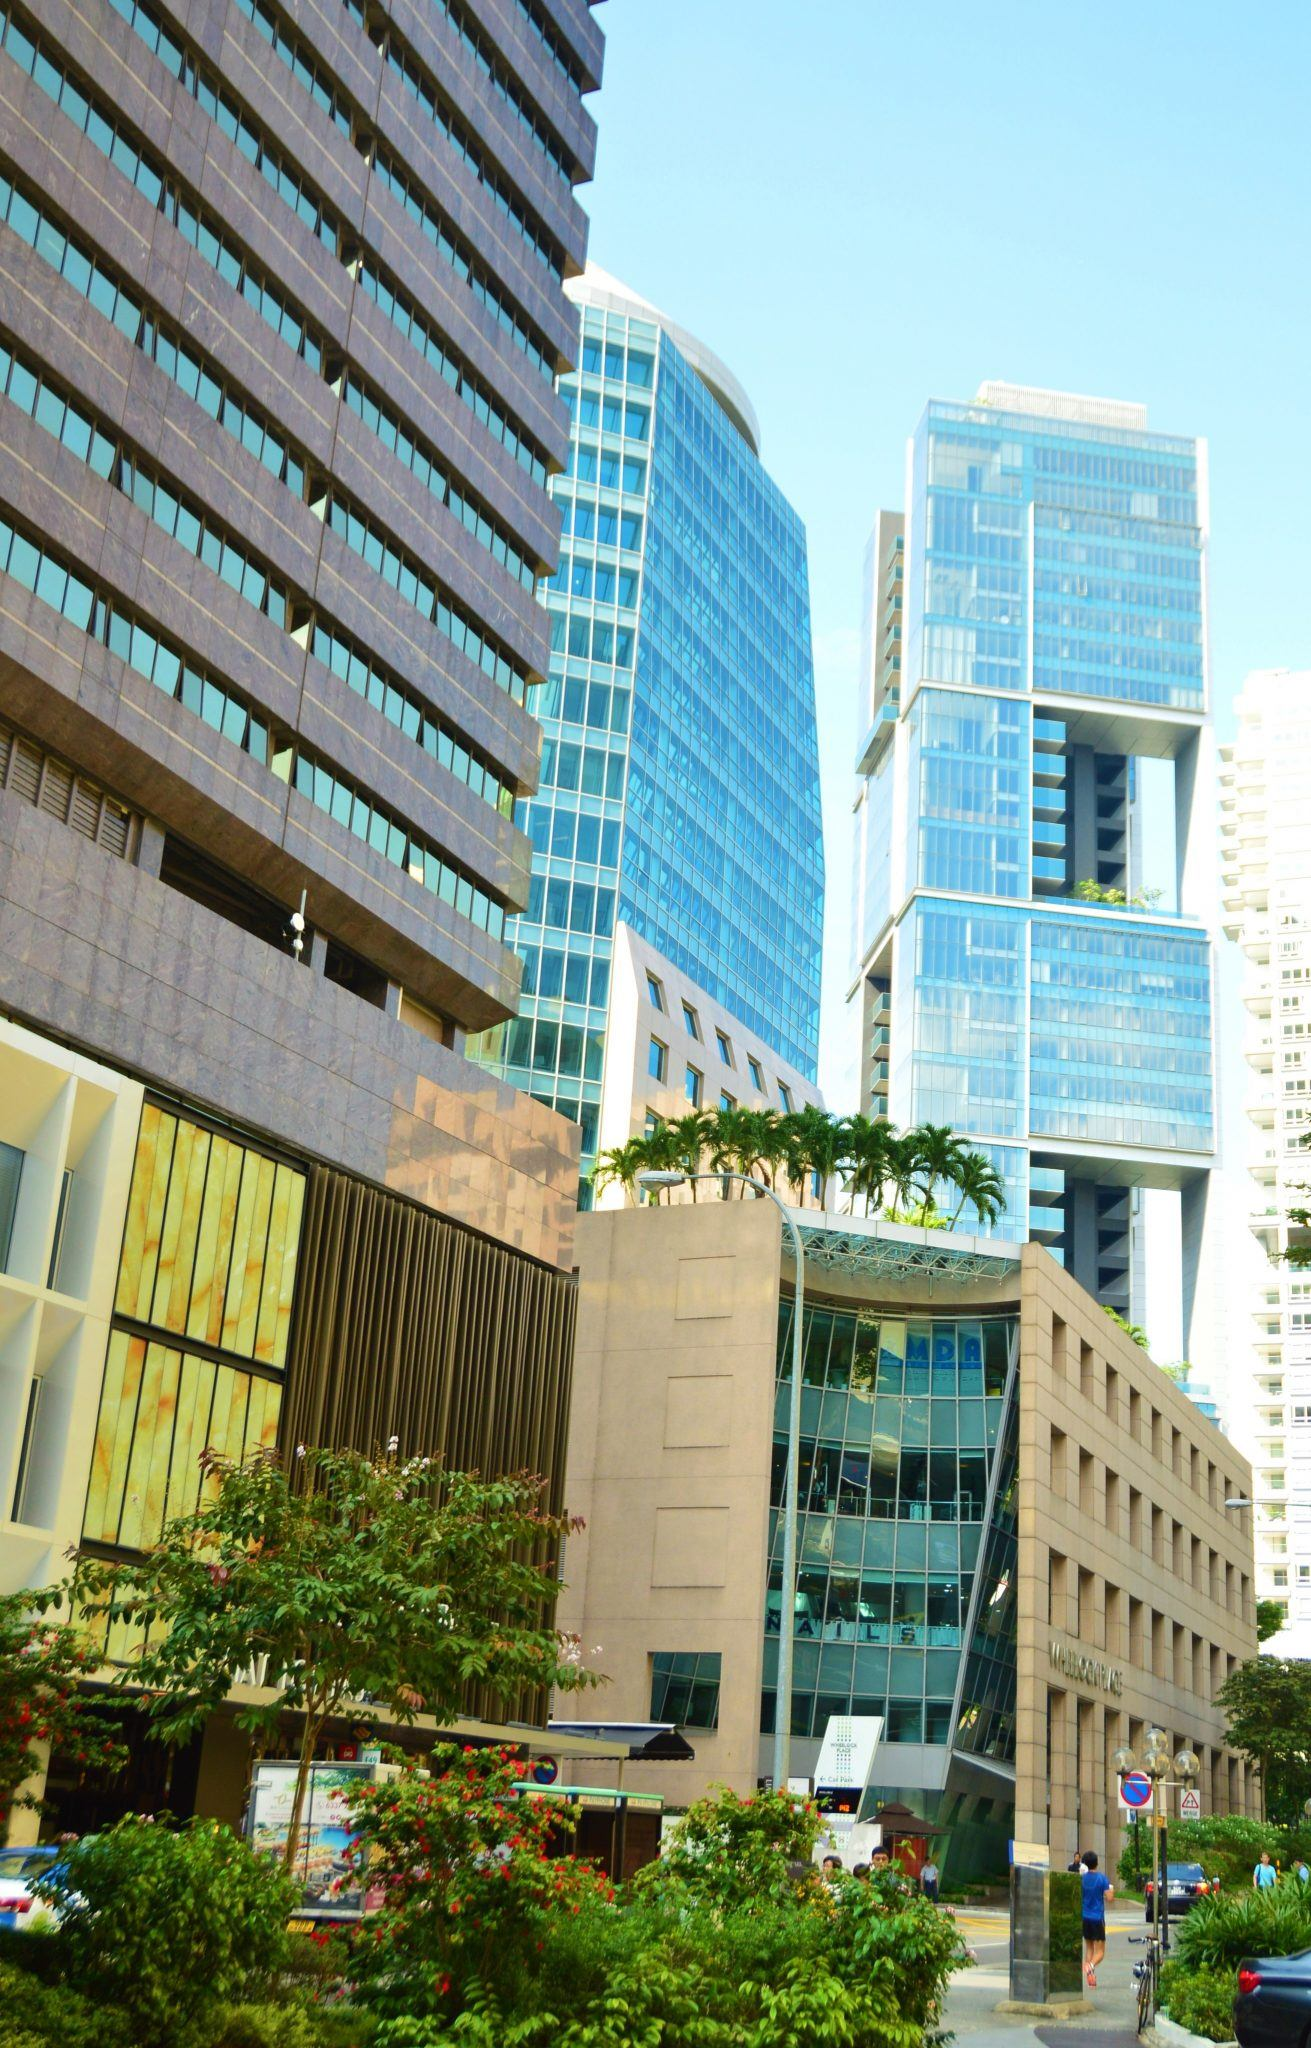 The buildings of Orchard Road